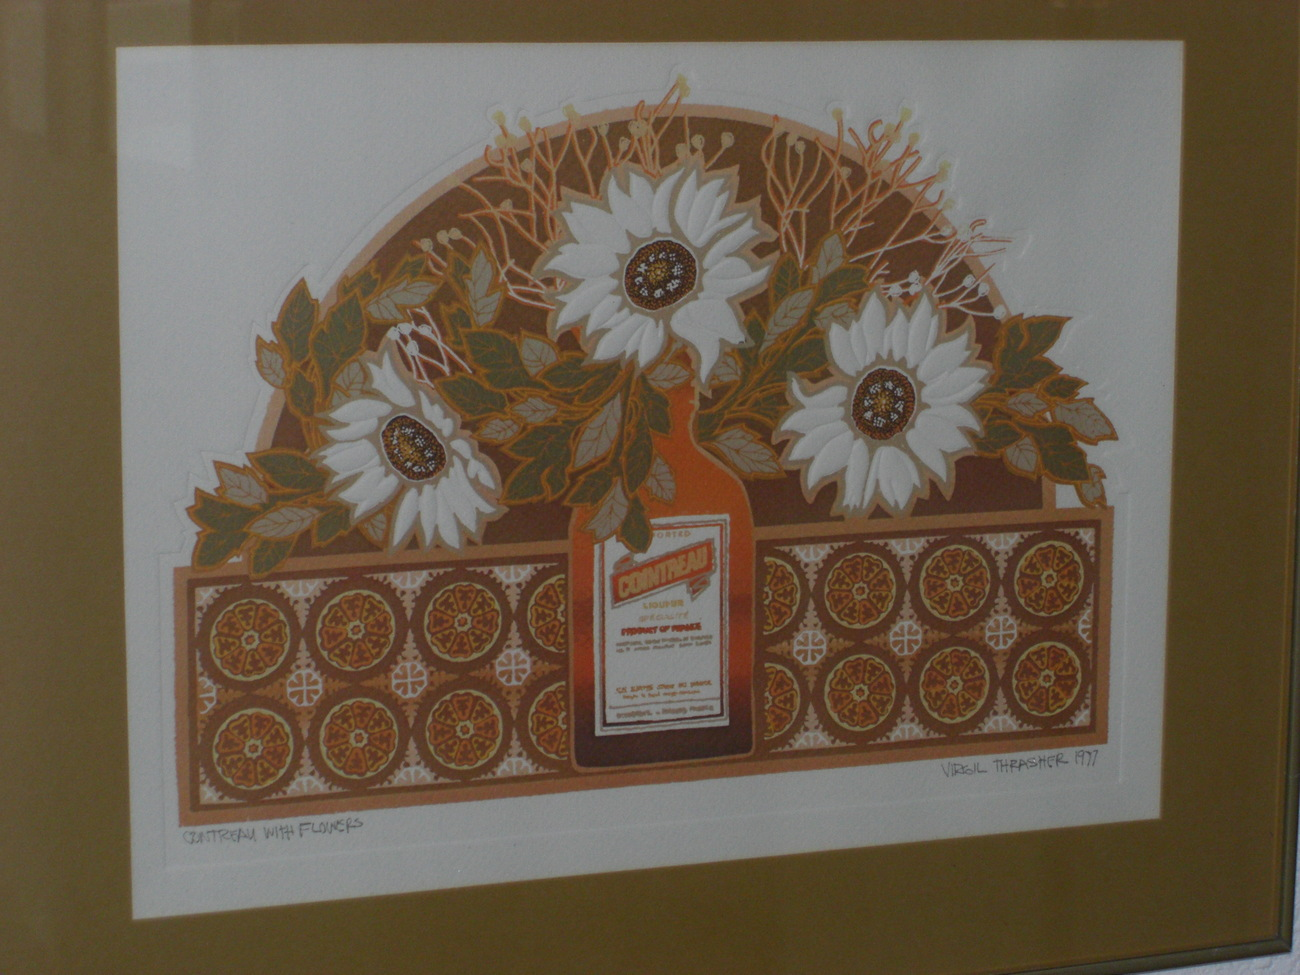 VIRGIL THRASHER Original 1977 Cointreau With Flowers